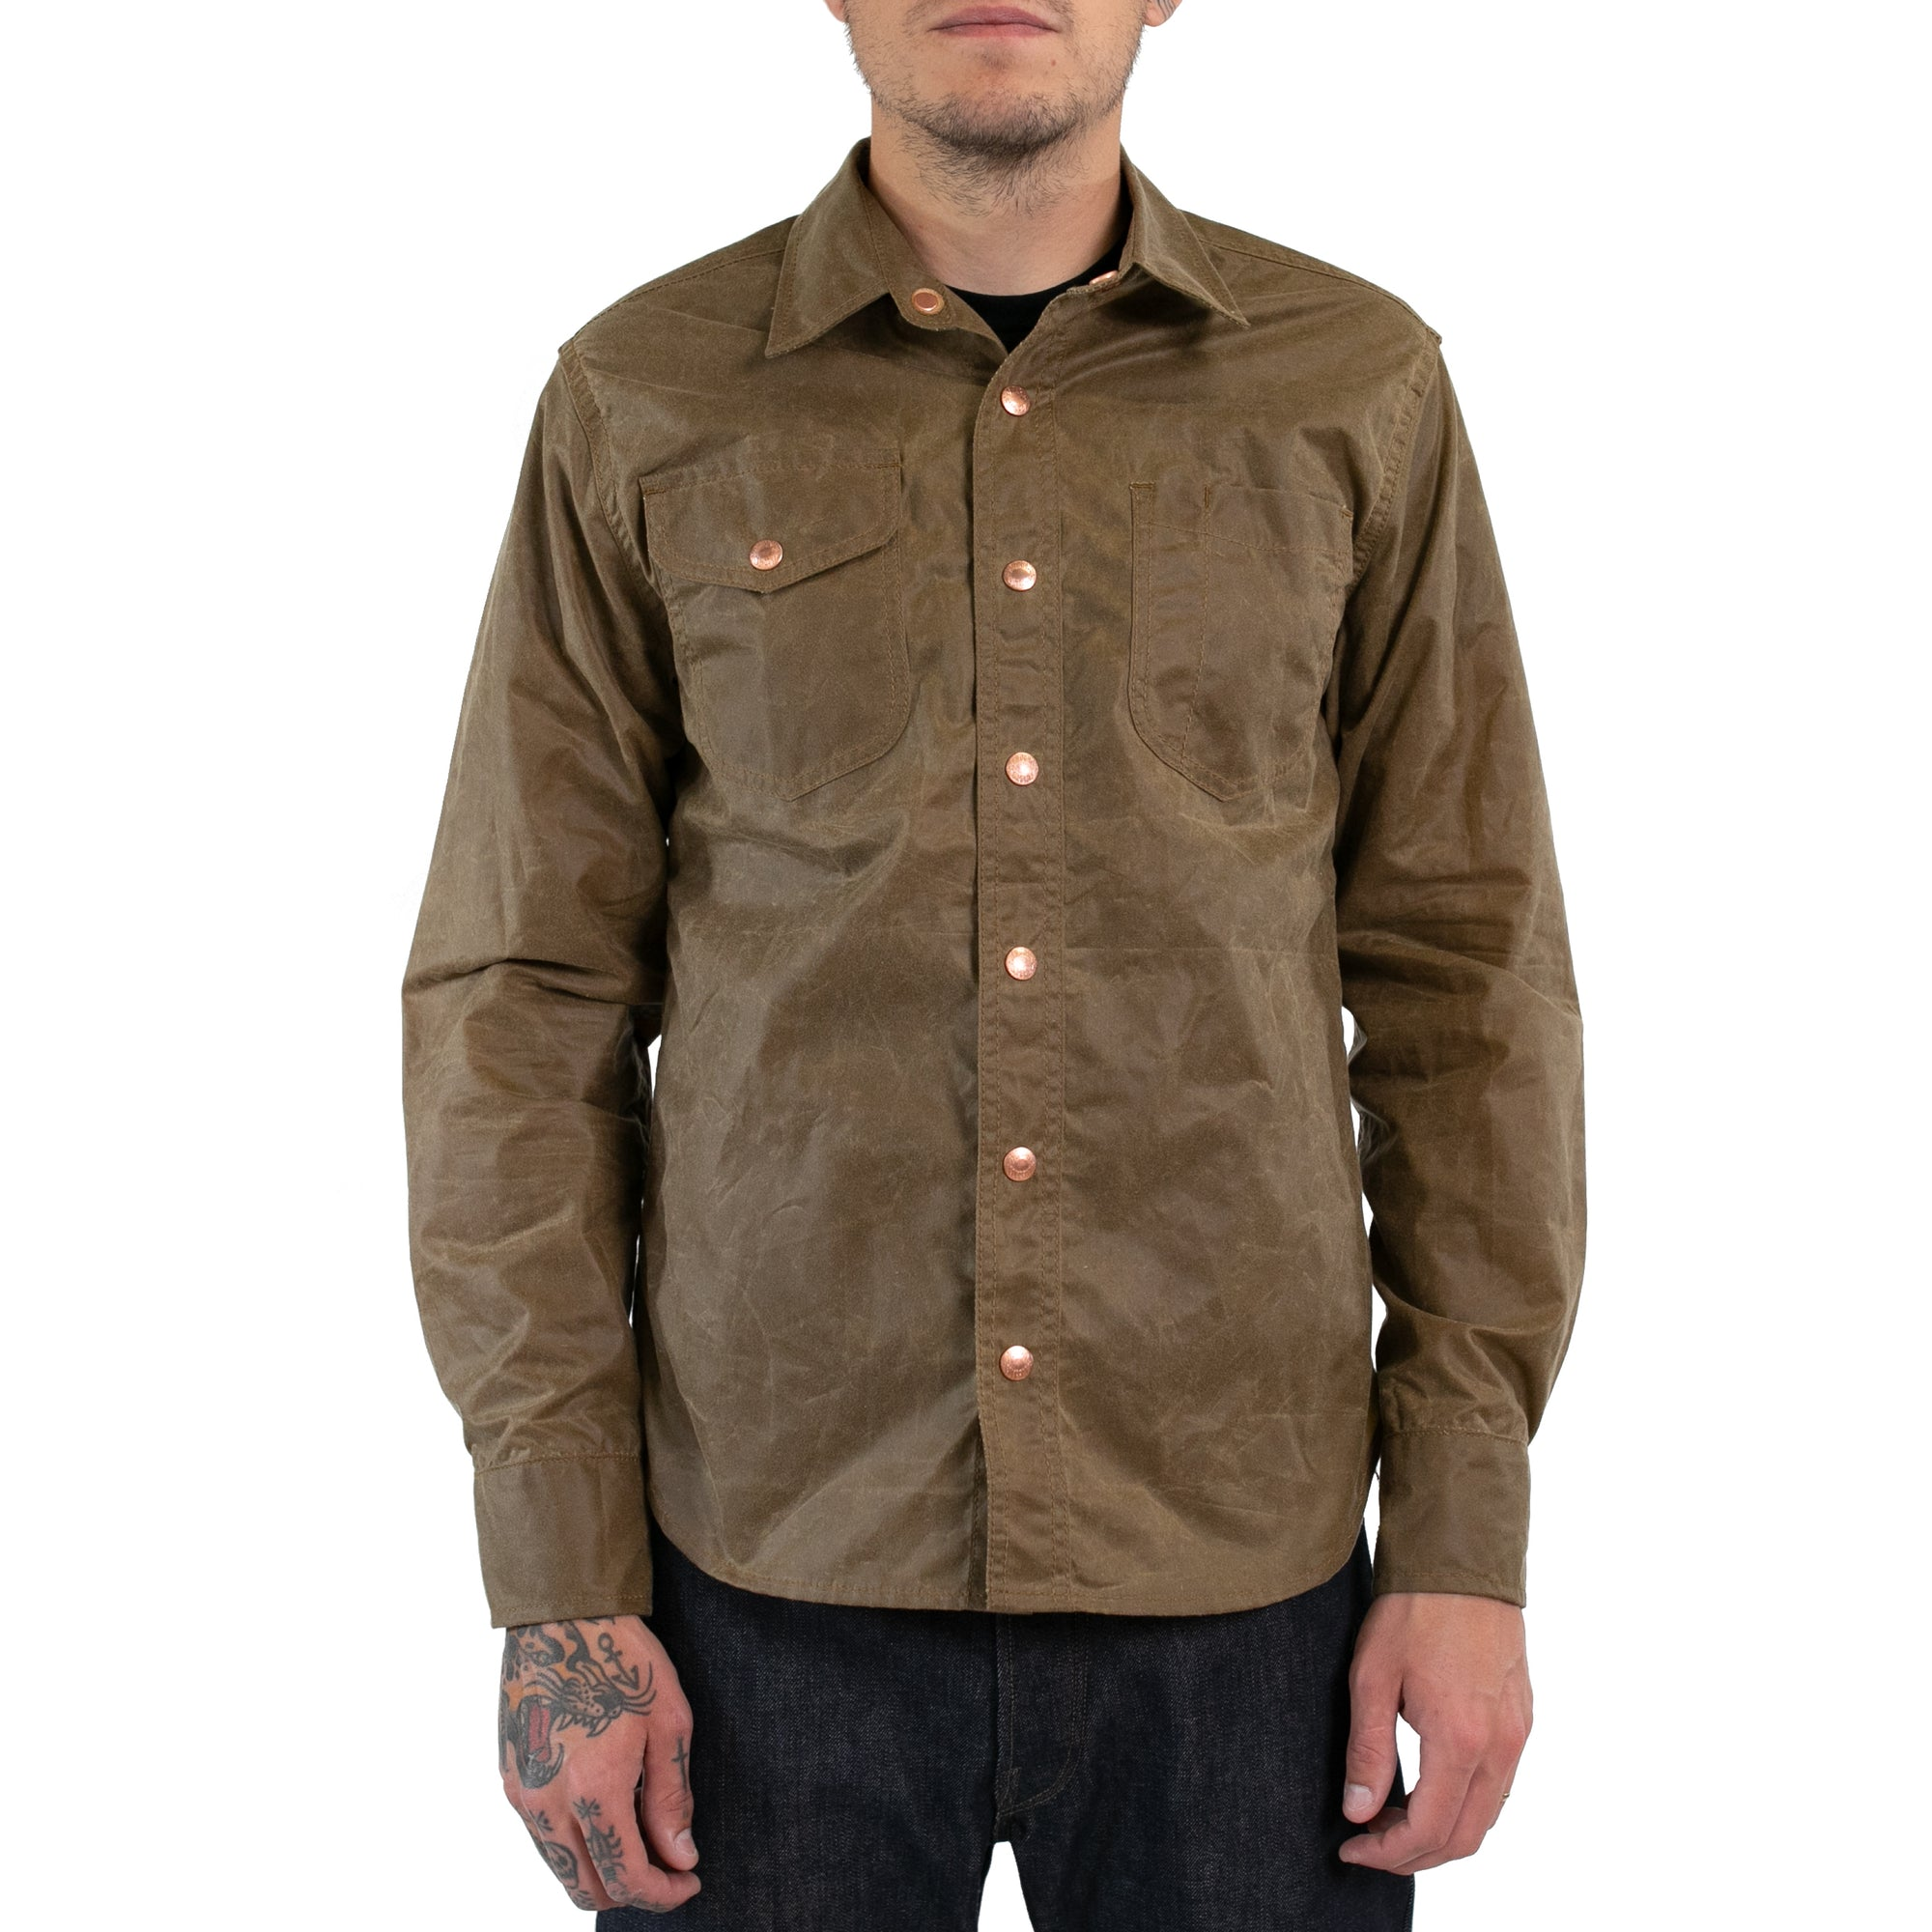 Field Tan Waxed Work Shirt